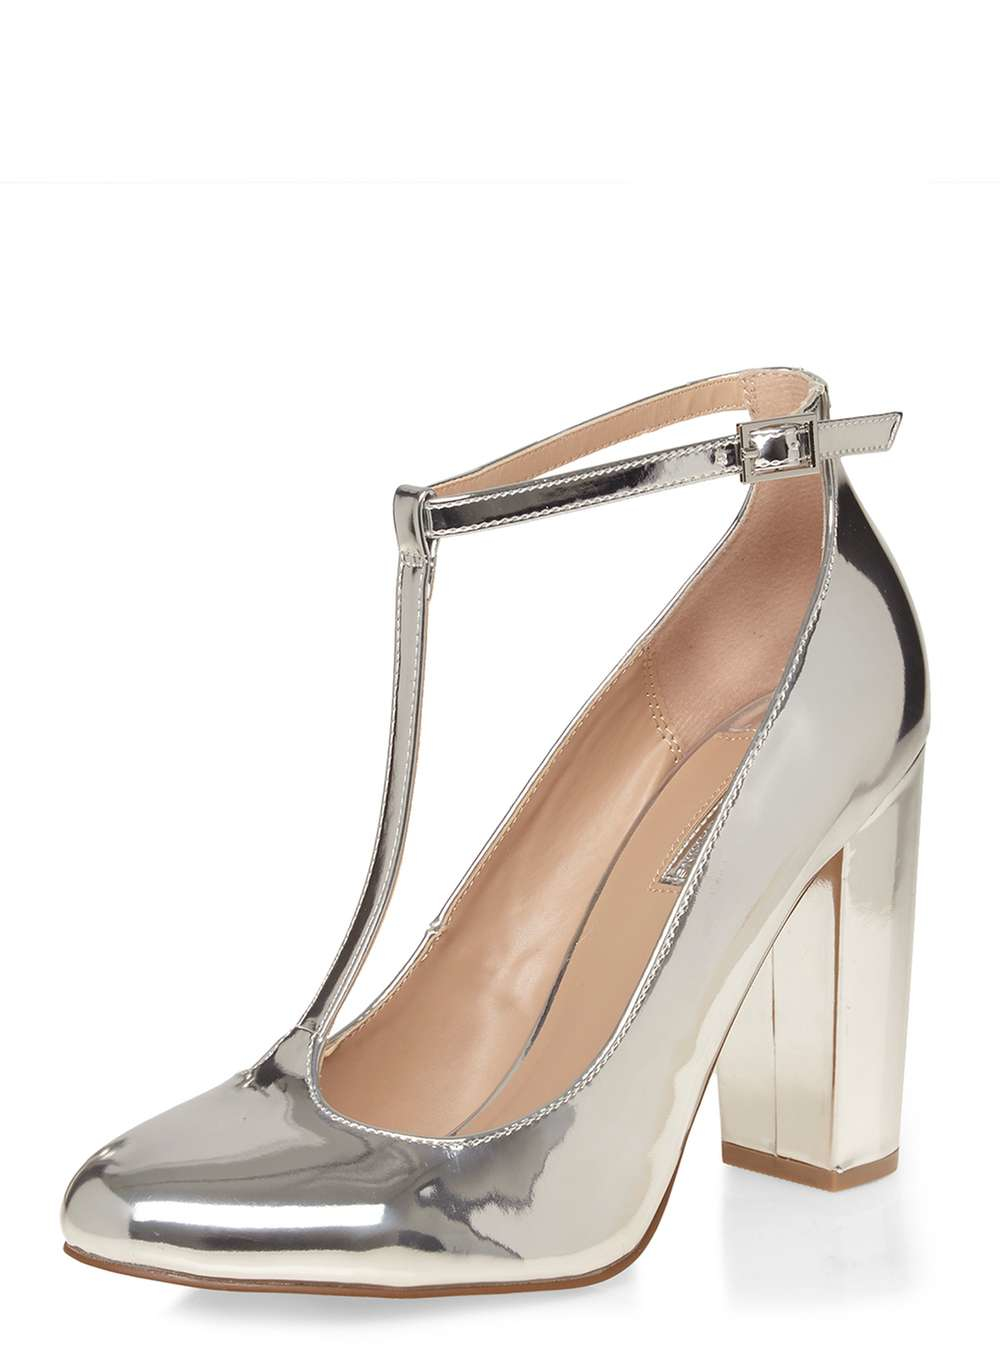 Dorothy Perkins Silver Court Shoes